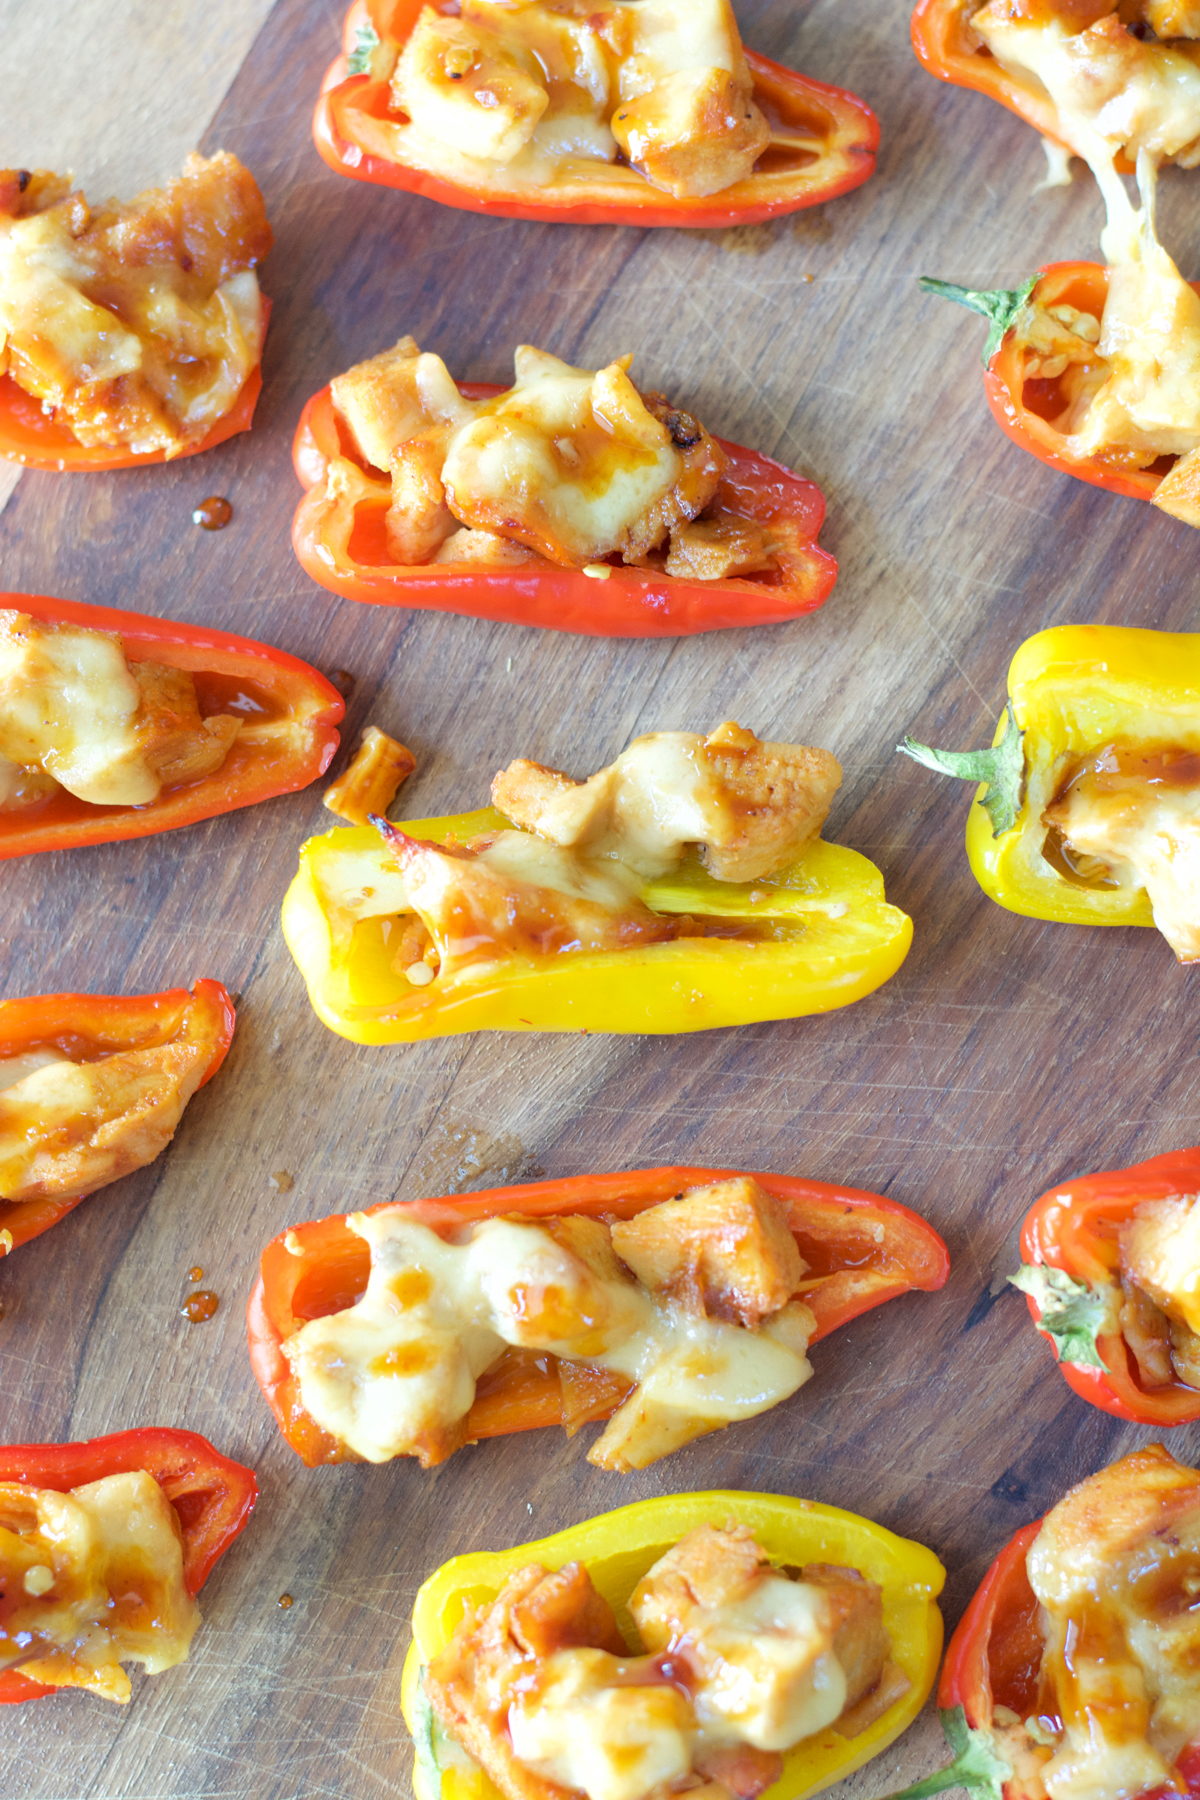 This simple six ingredient dish is perfect for Summer entertaining! Your guests will love these sweet and spicy Chipotle Chicken Stuffed Peppers!